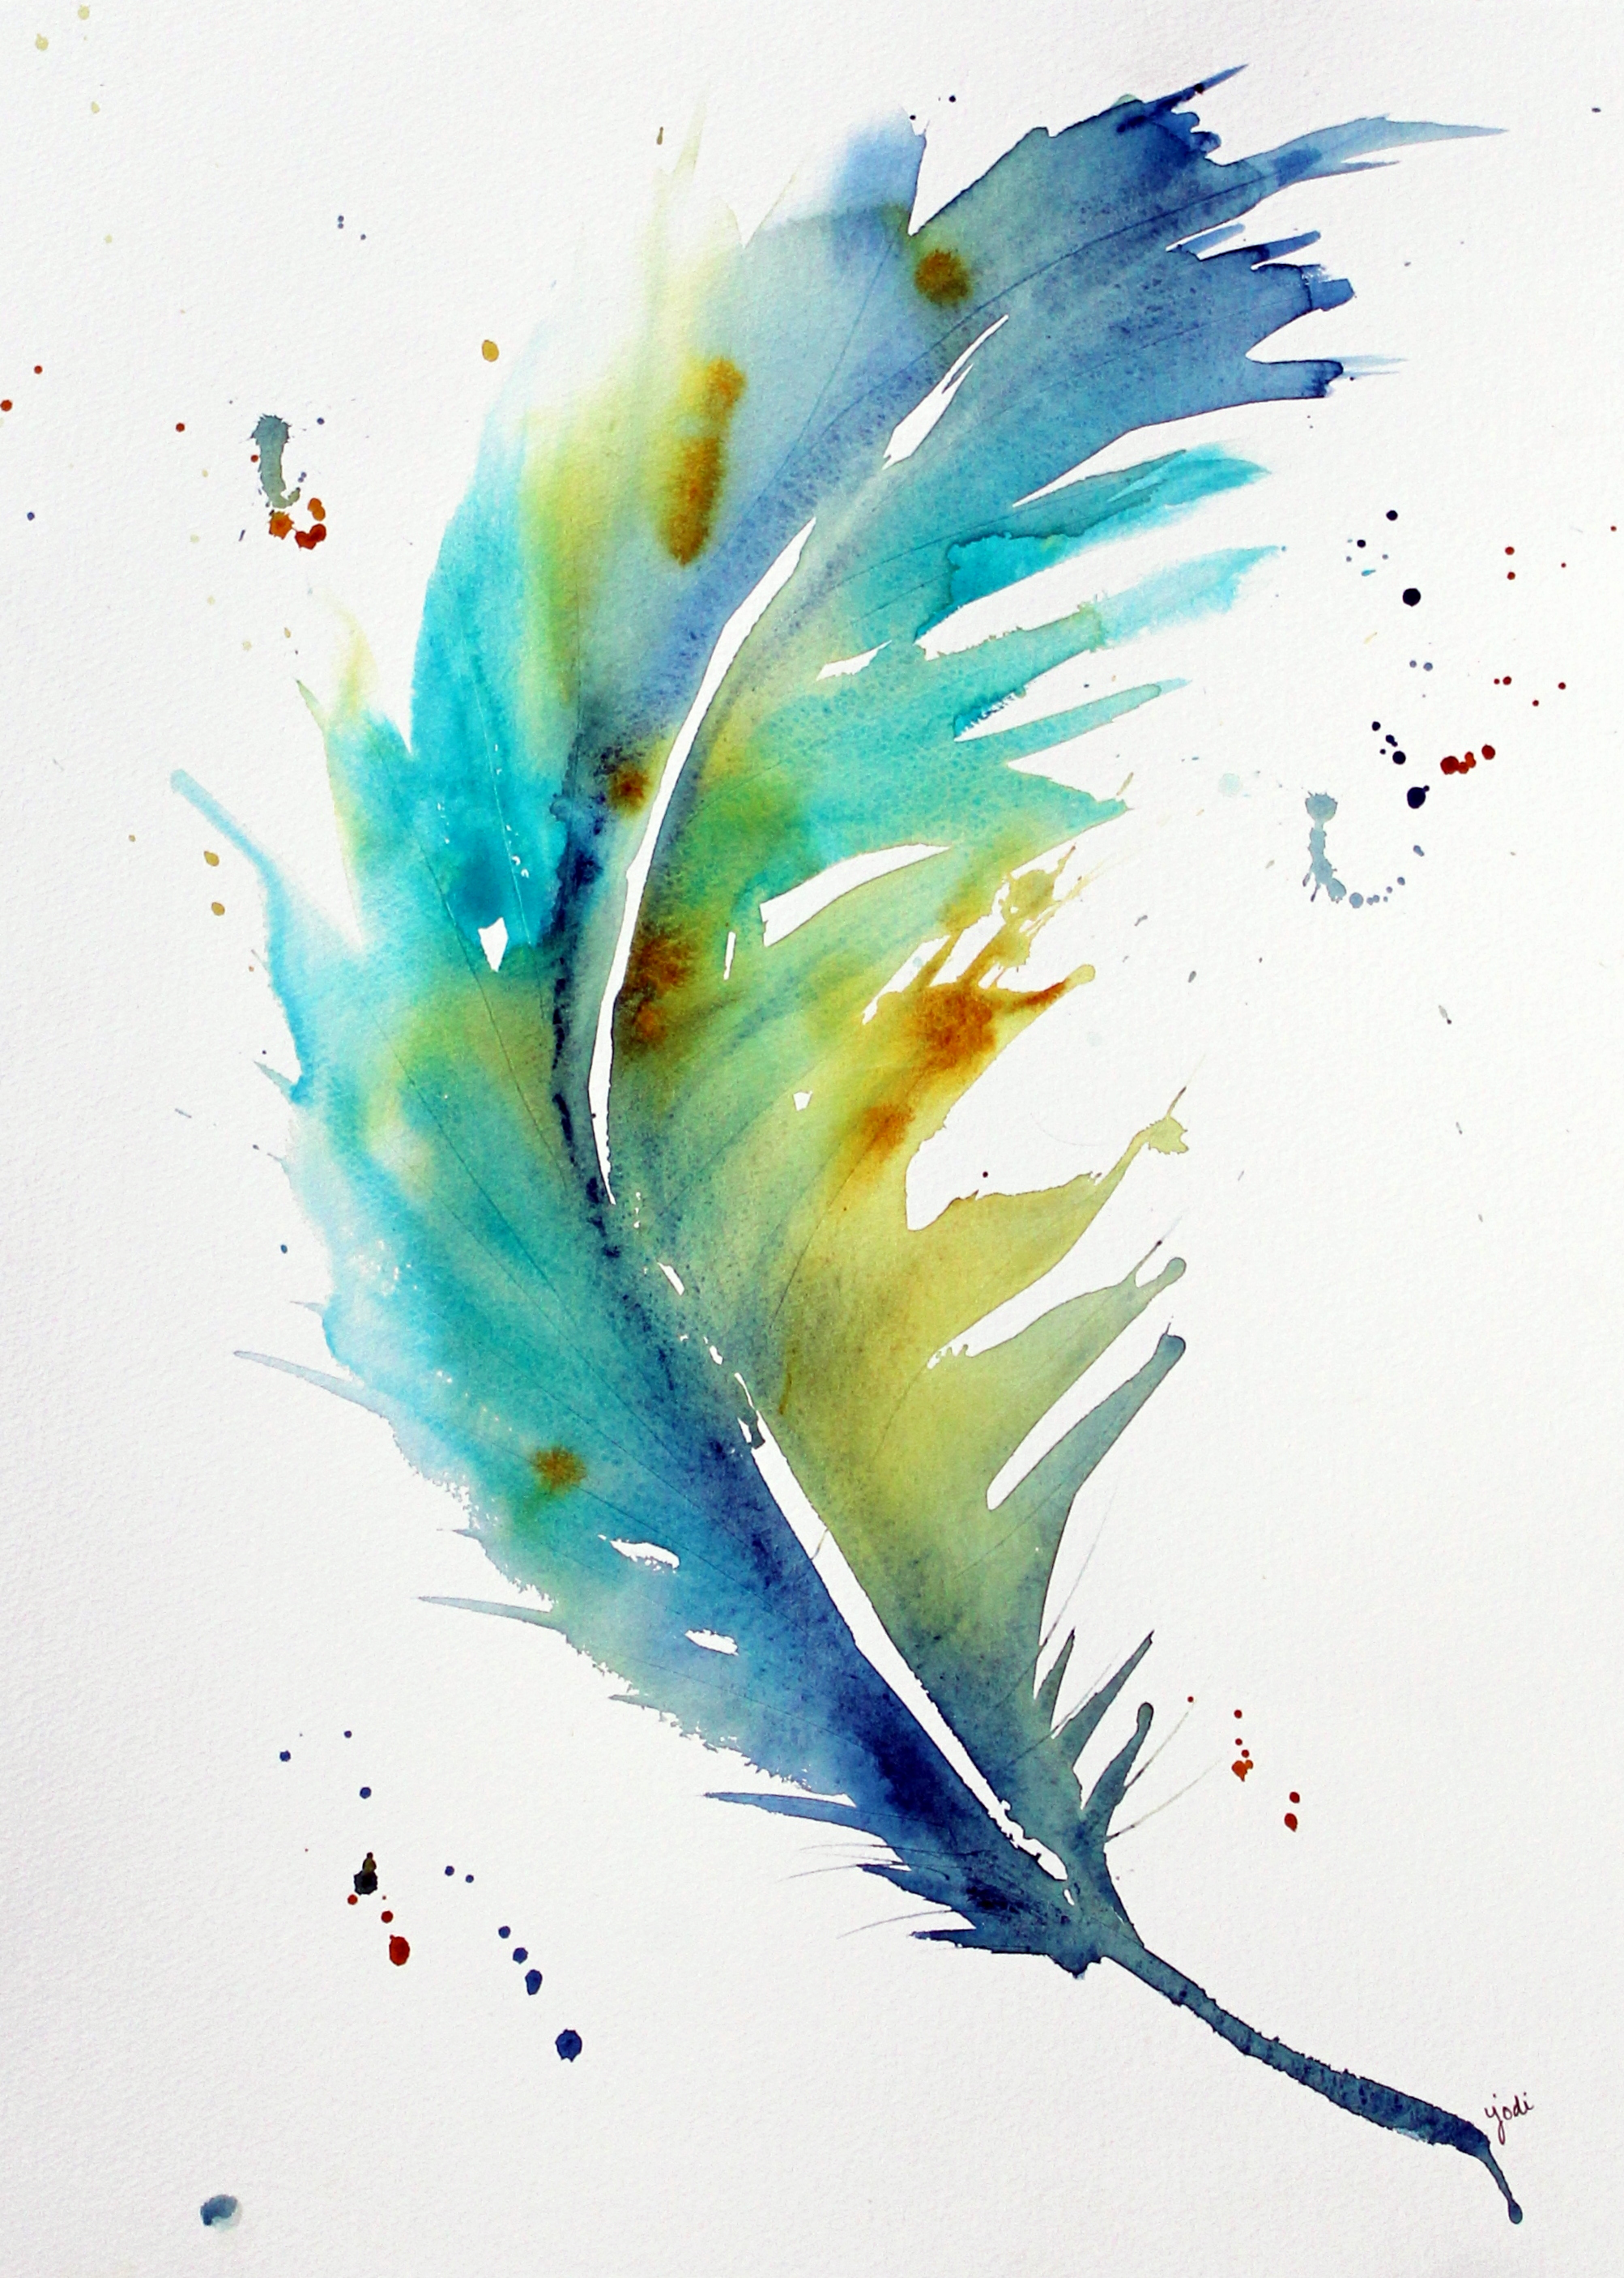 Creative Inspiration in Food, Watercolor, Photography, Writing and ...